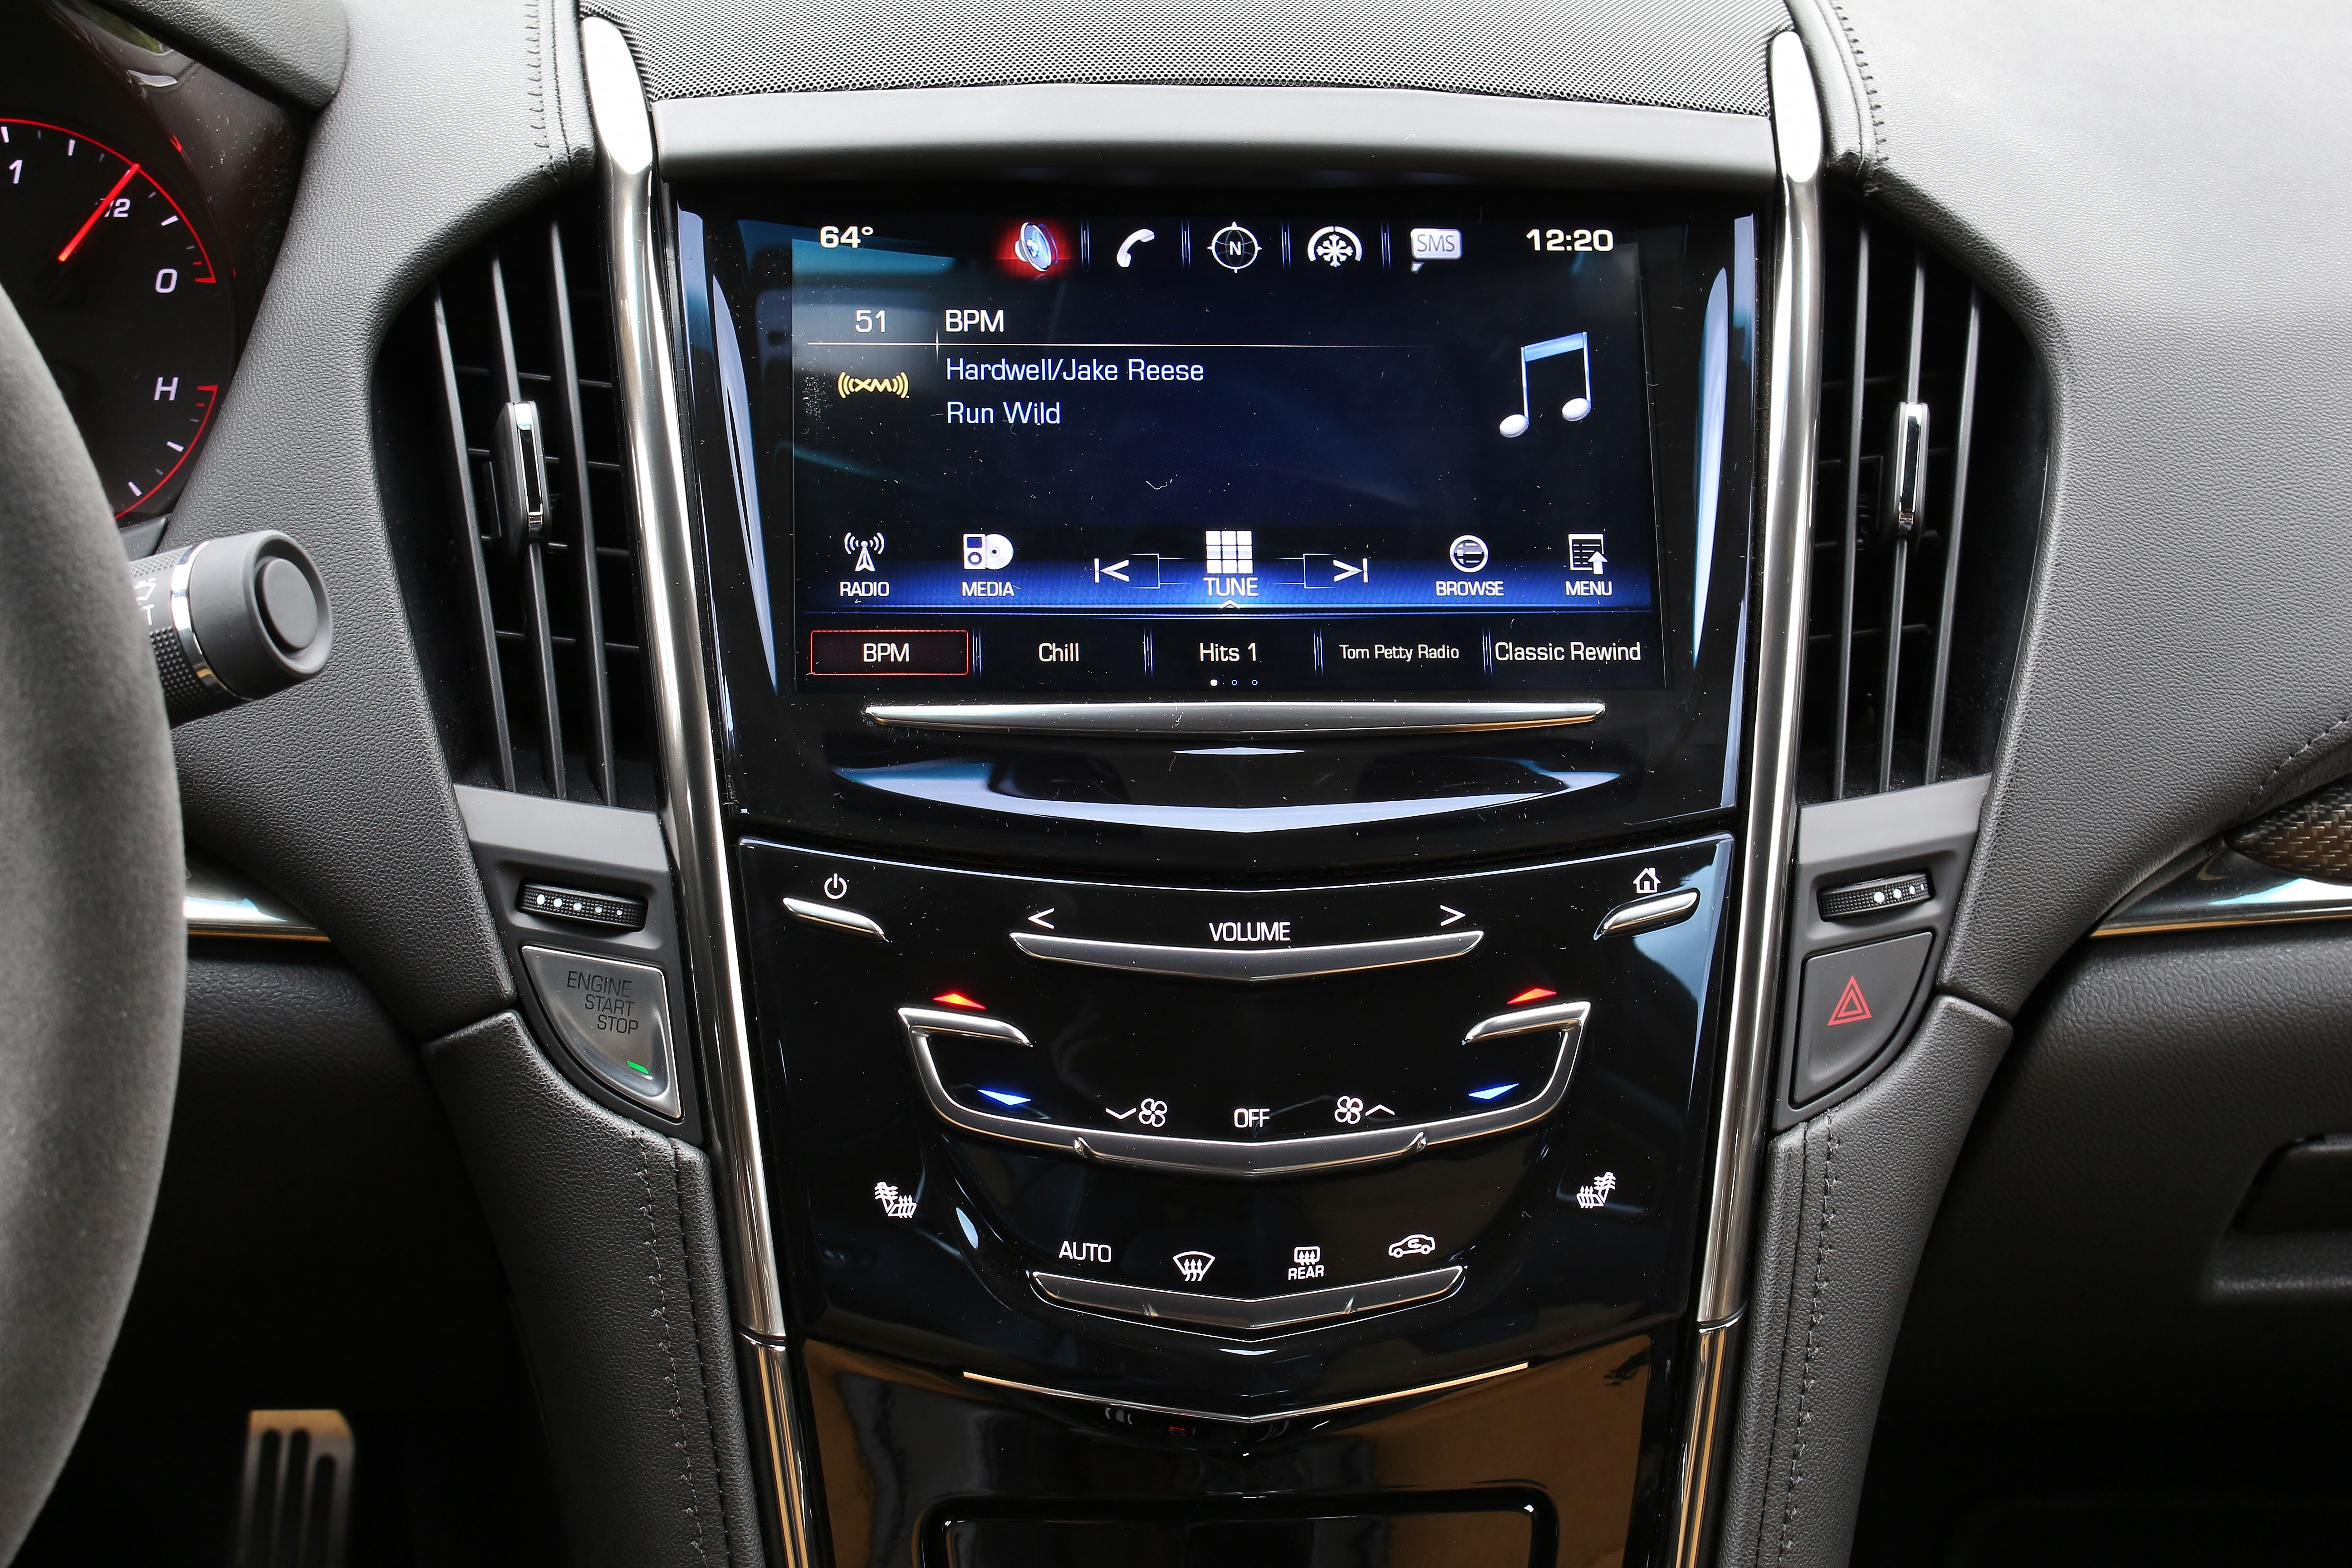 connectivity sport architecture safety pages kits luxury crossover cadillac adds award detail presskits en cts winning to content me sedan media technology press